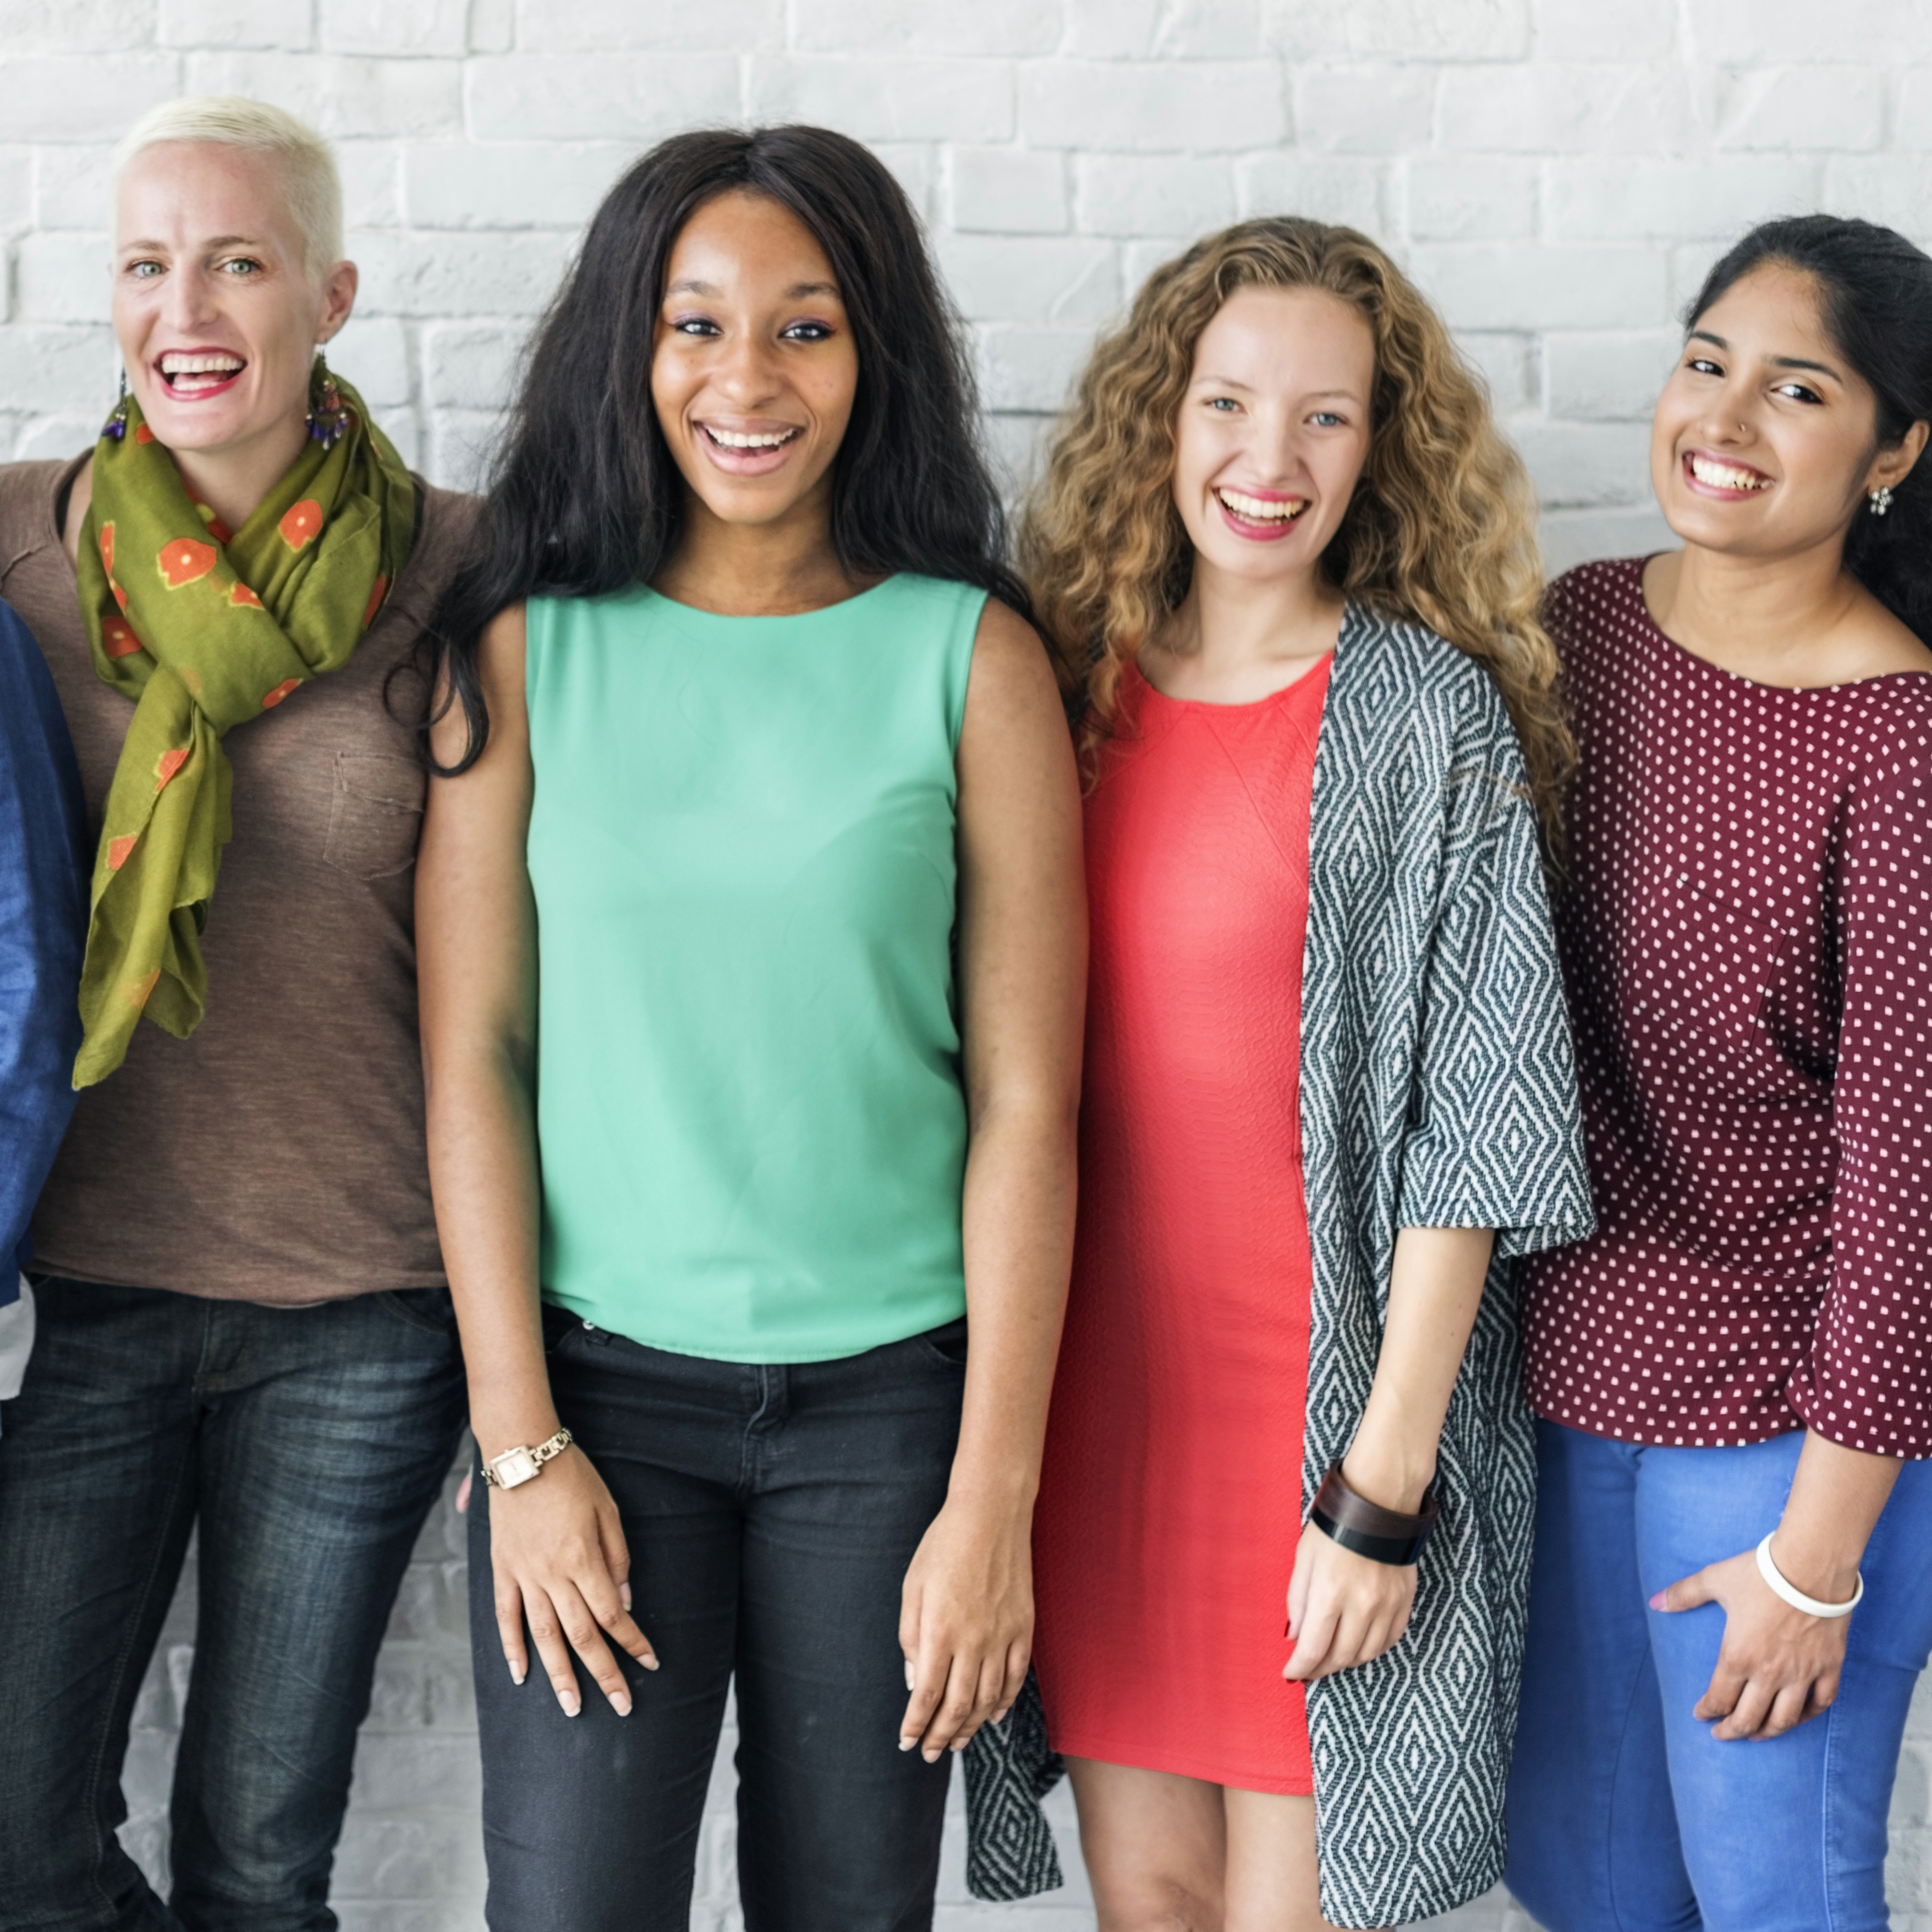 a diverse group of happy, smiling women standing near a brick wall for a background